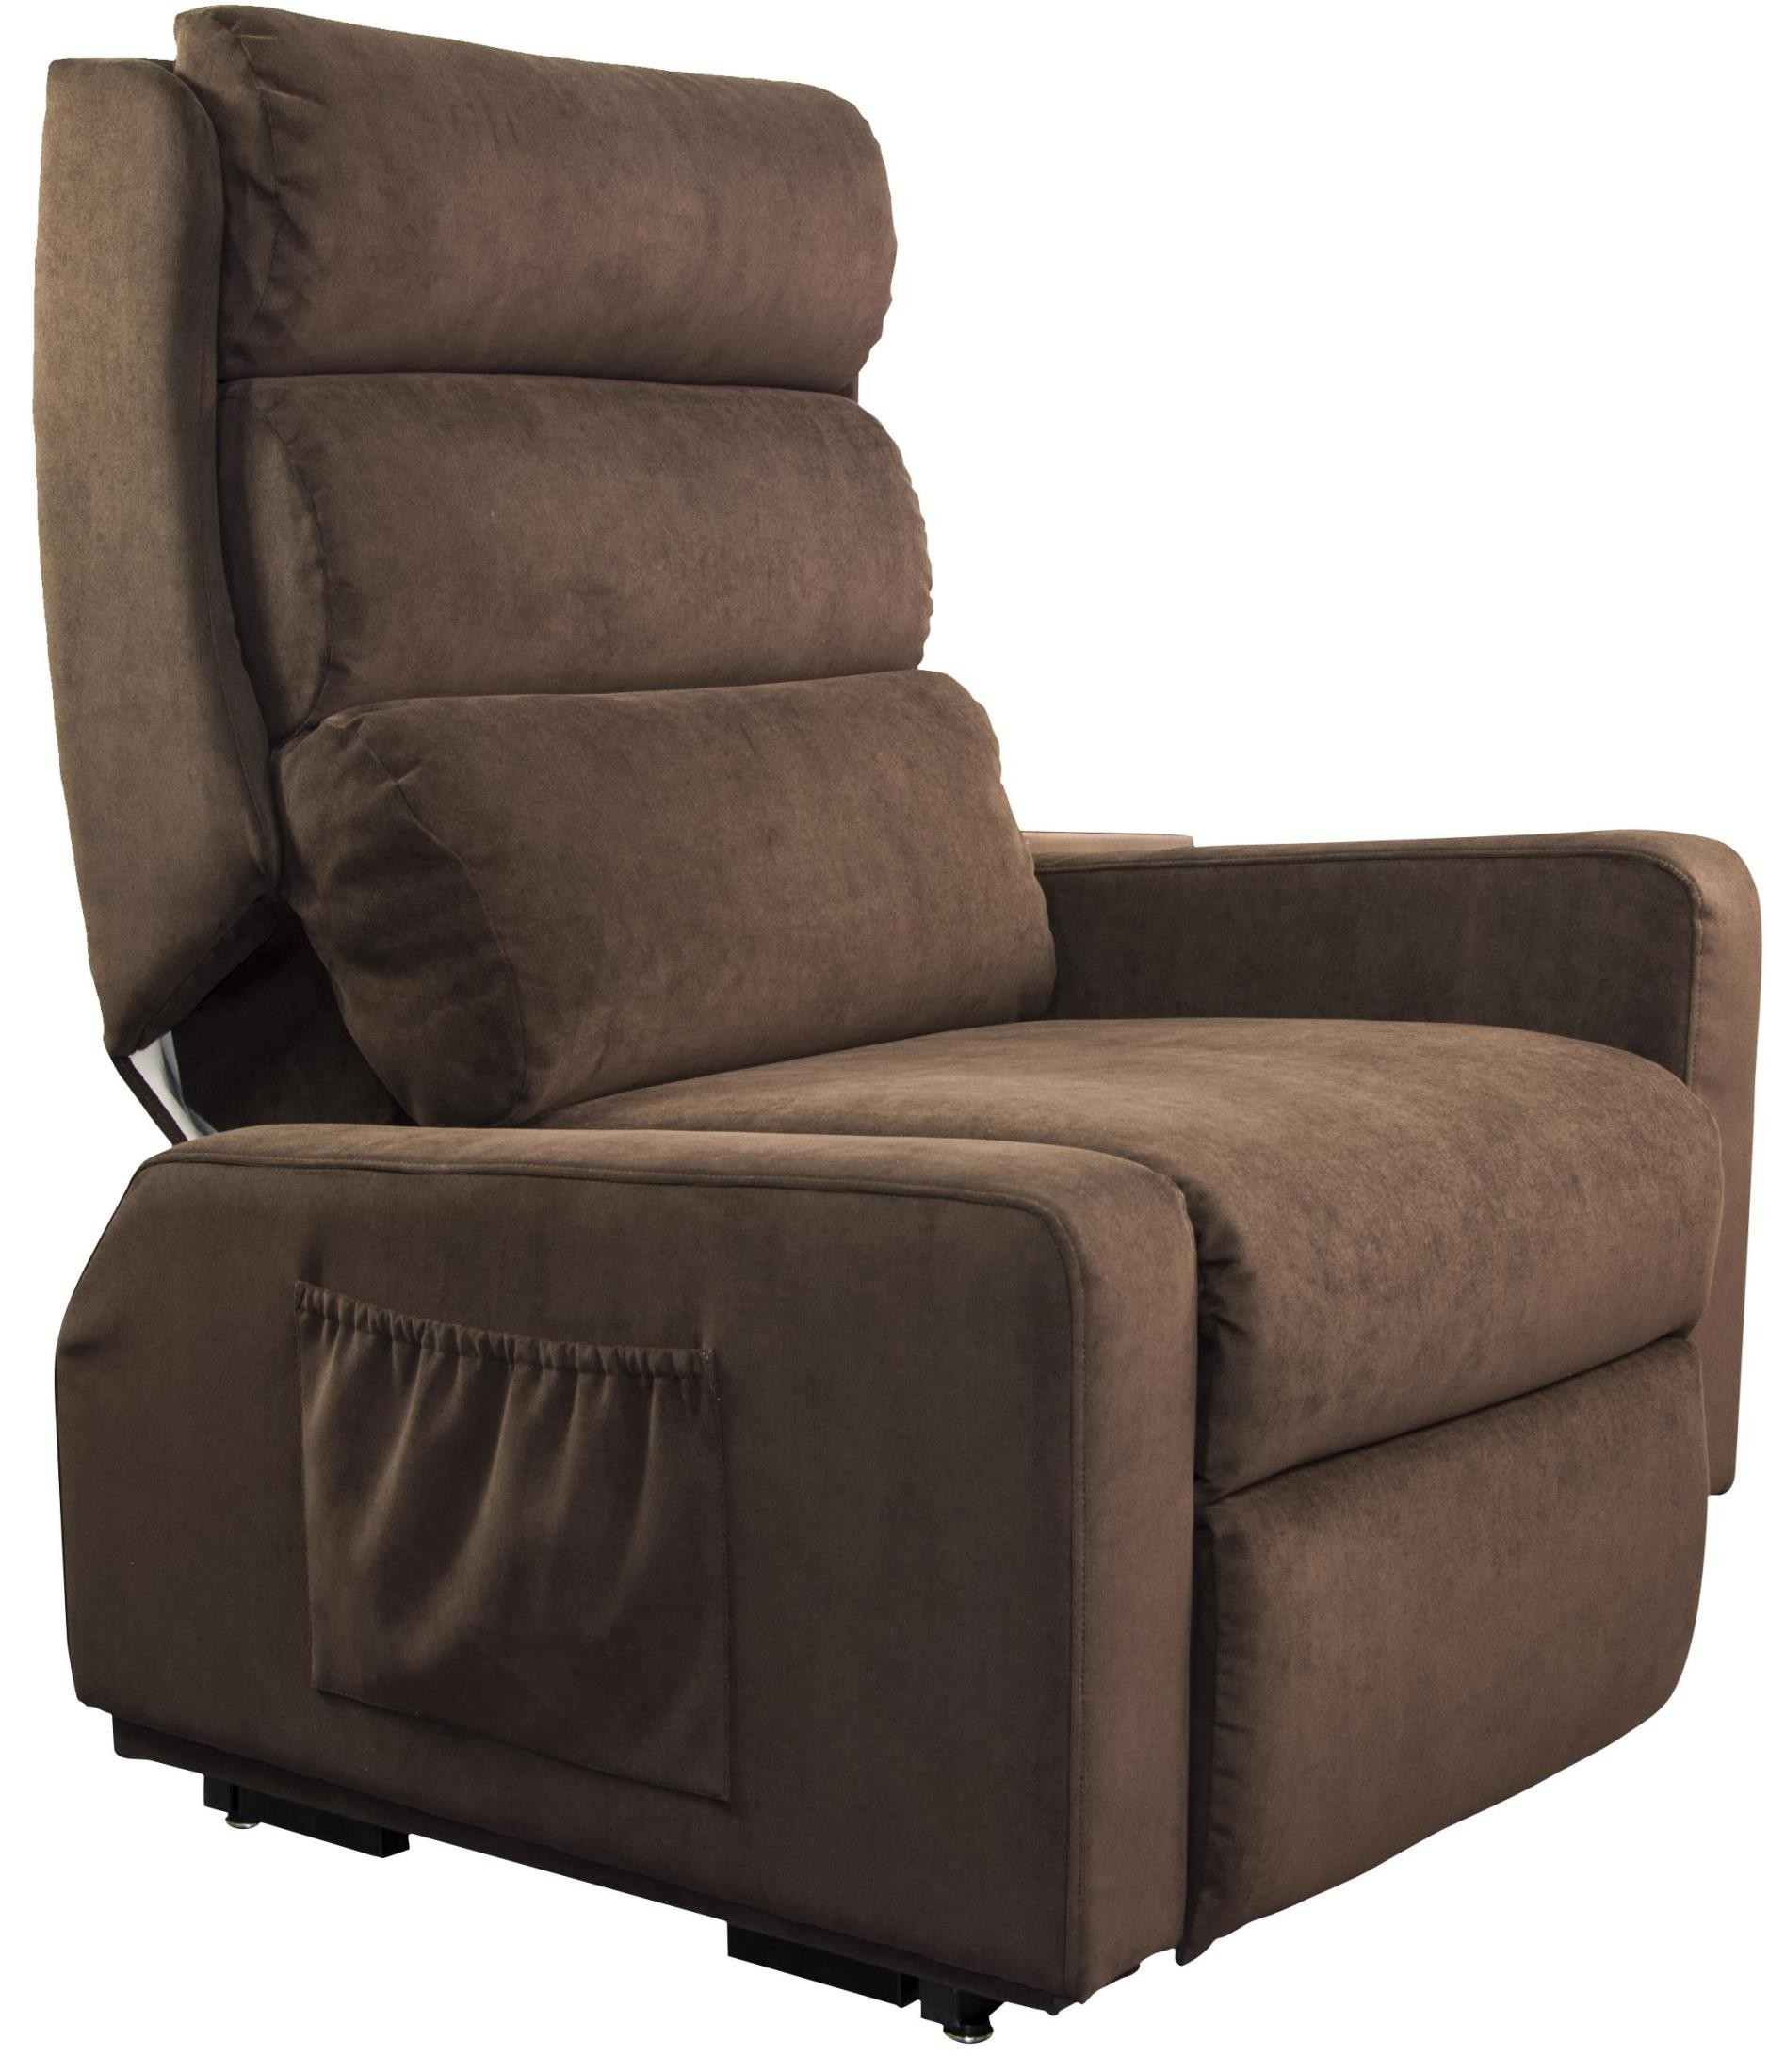 handicap lift chair recliner cushion cover mobility espresso from cozzia mc 510 fbn01